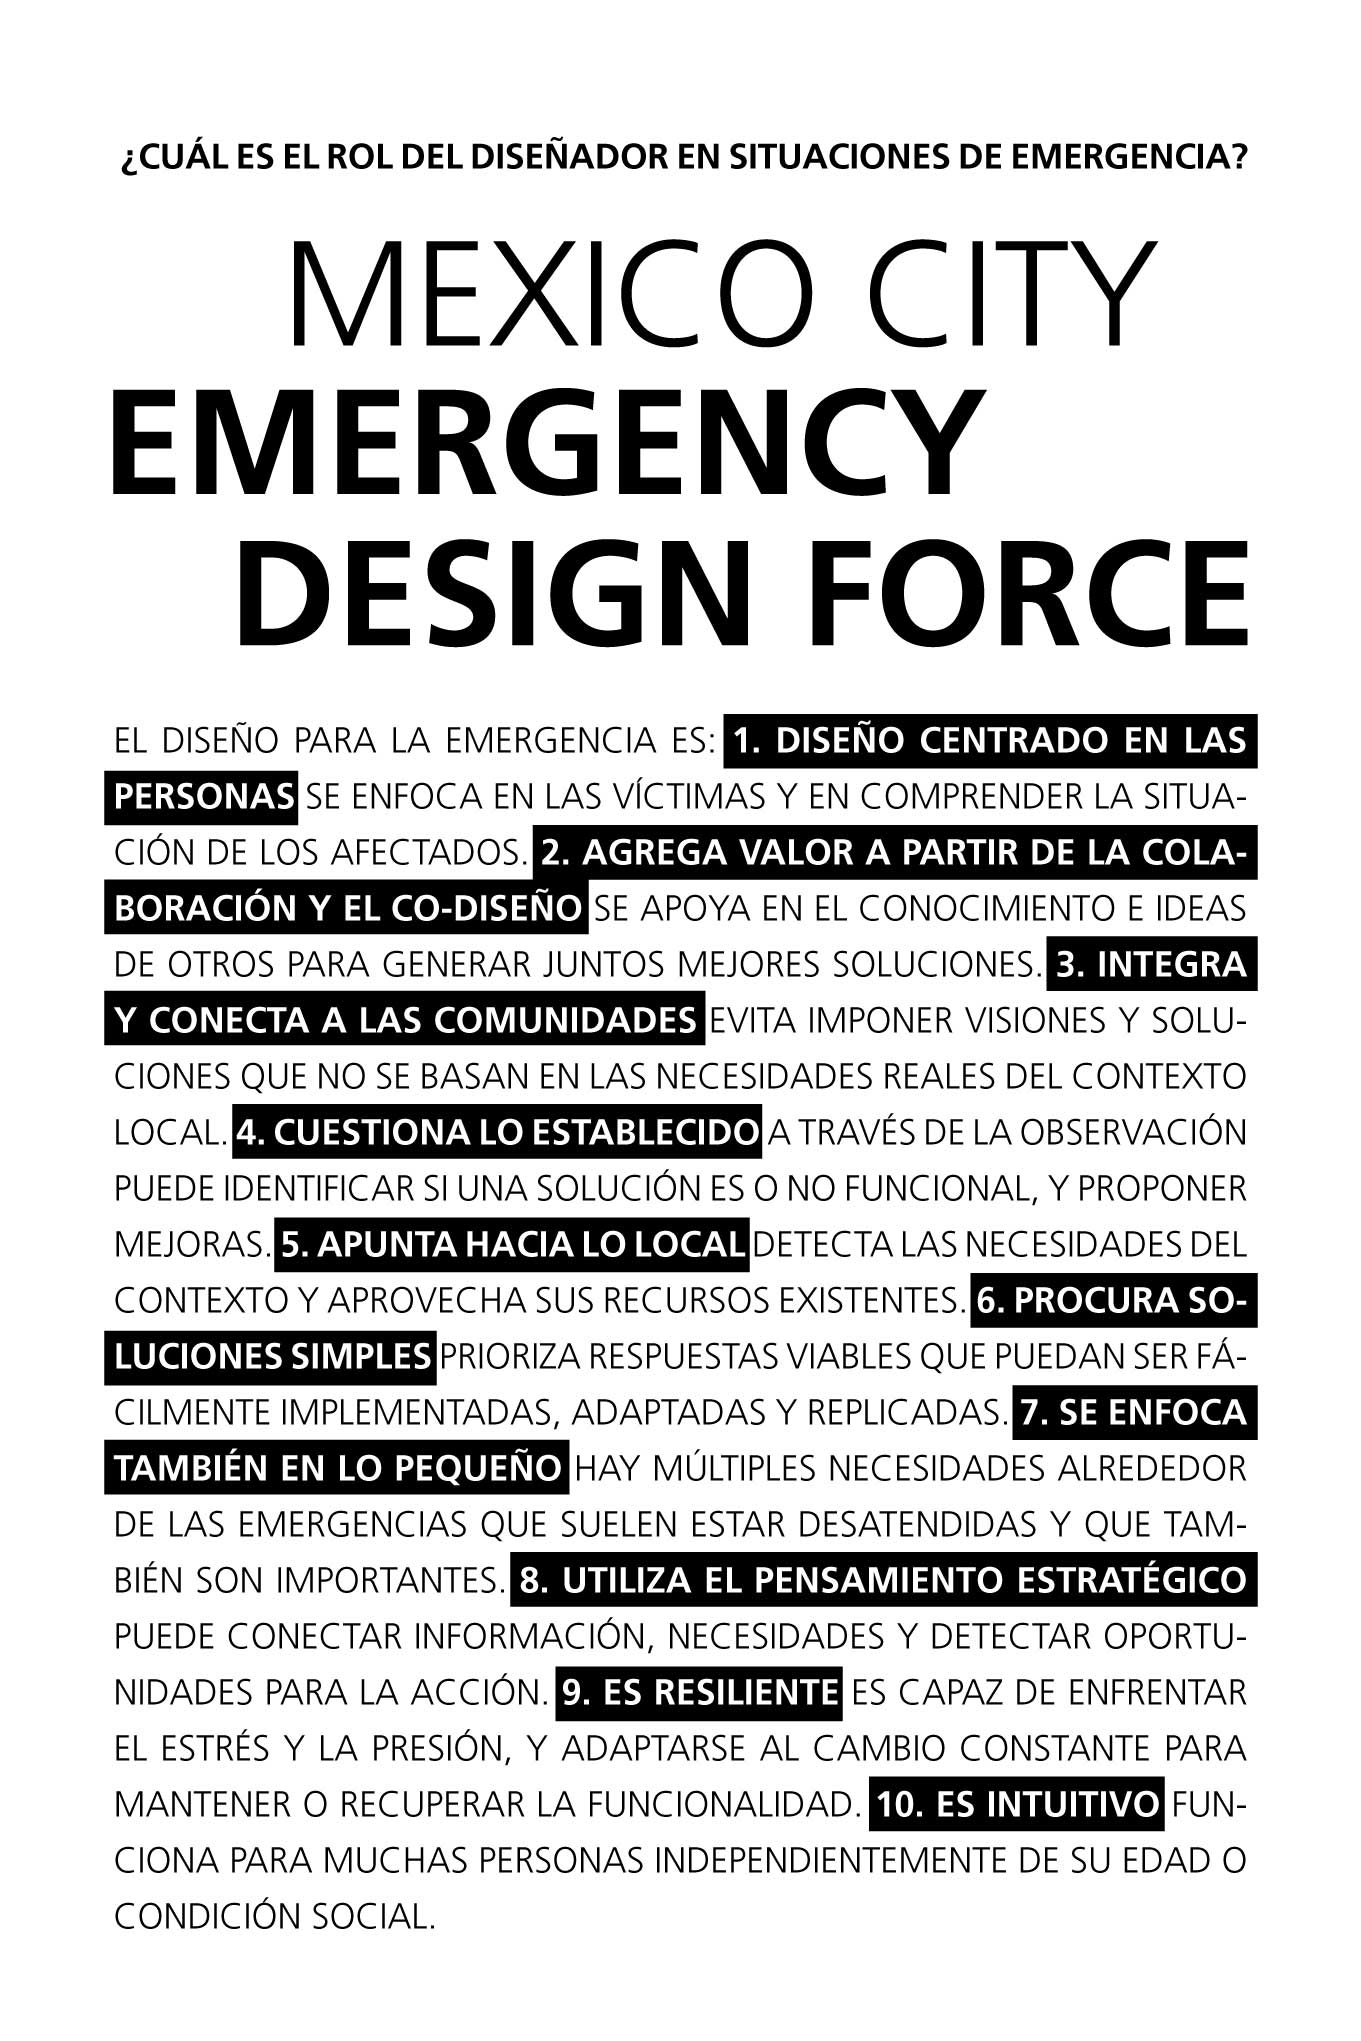 What is the role of the Designer in emergency situations? Designing for emergency means: 1) Design centered on people. 2) Adding shared value through collaboration and co-design 3) Integrating and connecting communities 4) Questioning what has been done 5) Focusing on the local 6) Using simple solutions 7) Focusing on the small things 8) Using strategic thinking 9) Being resilient 10) Being intuitive